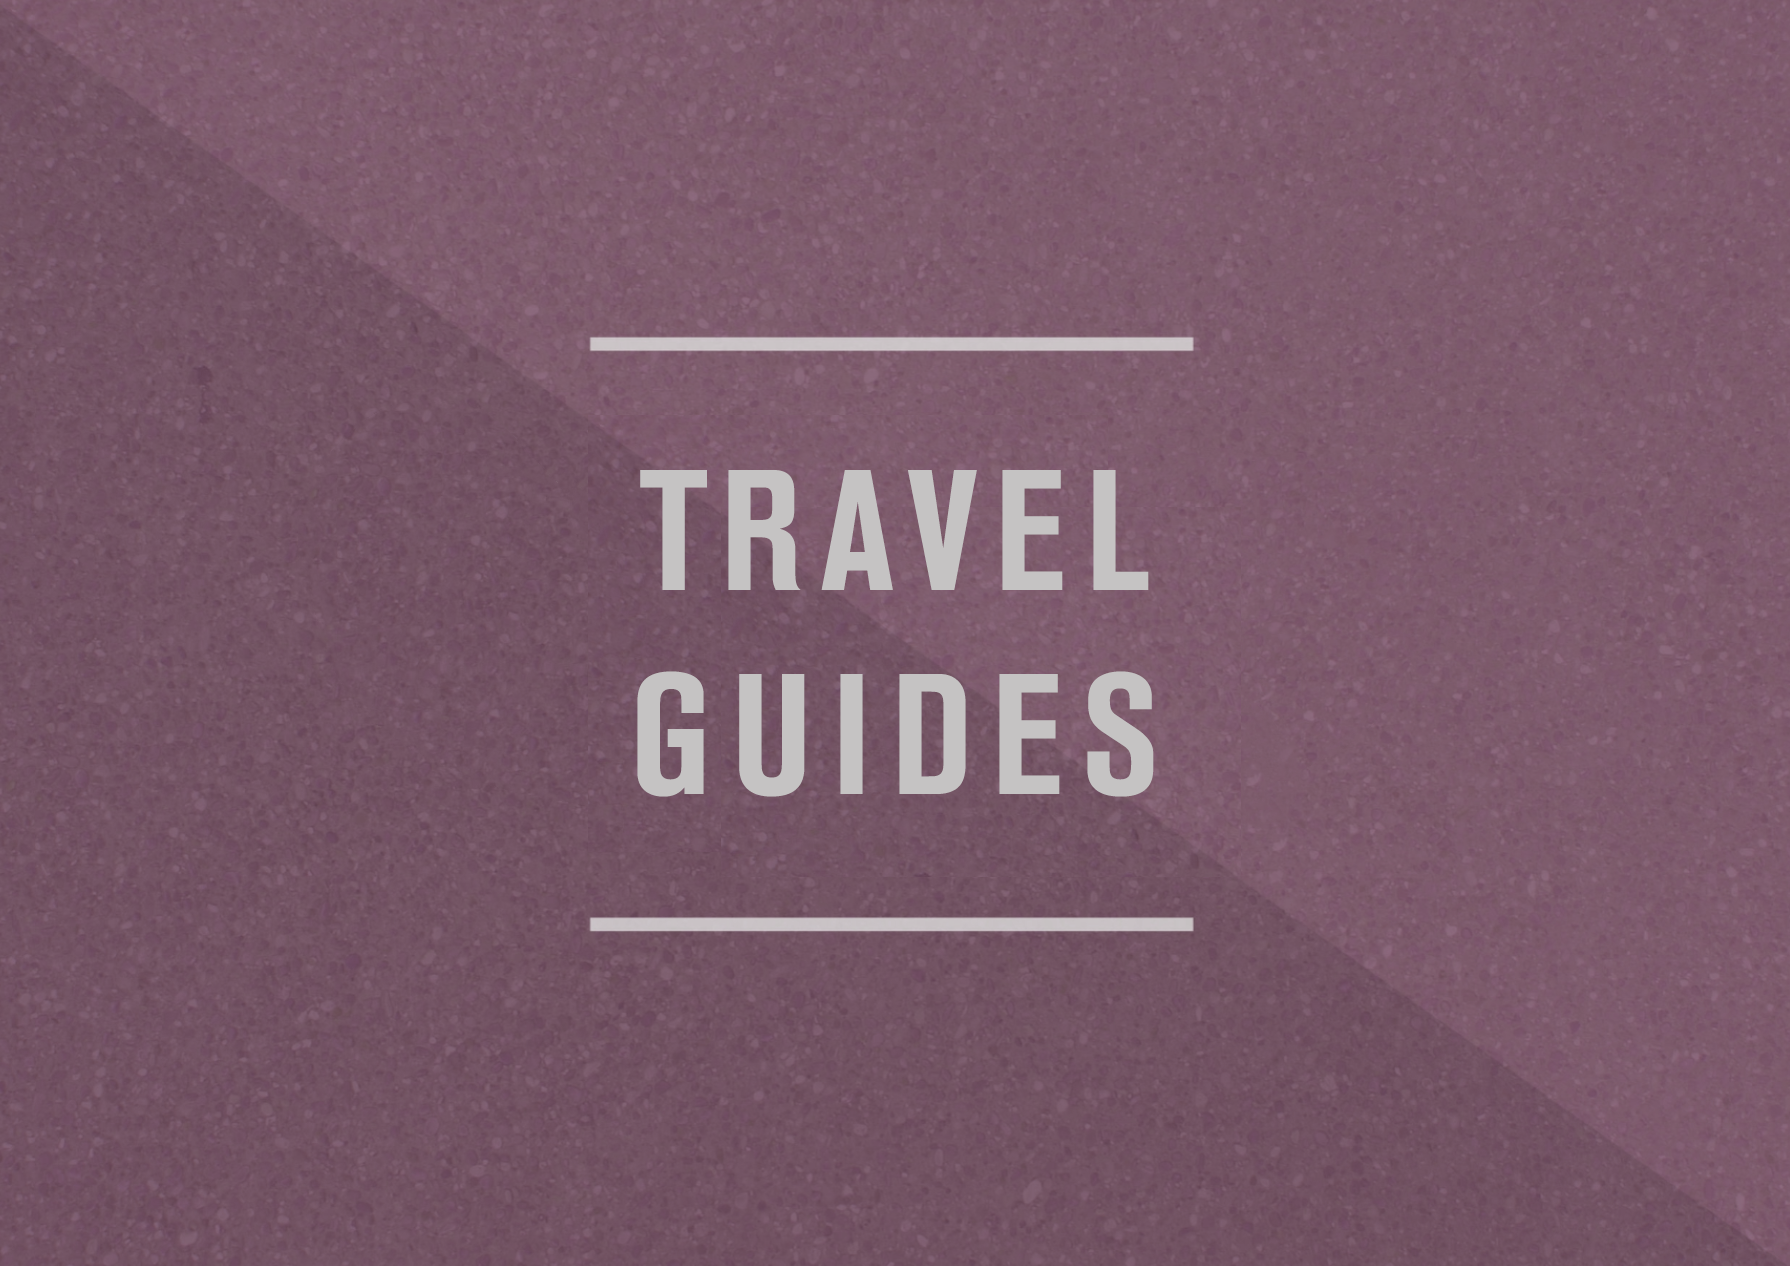 Travel Guide.png